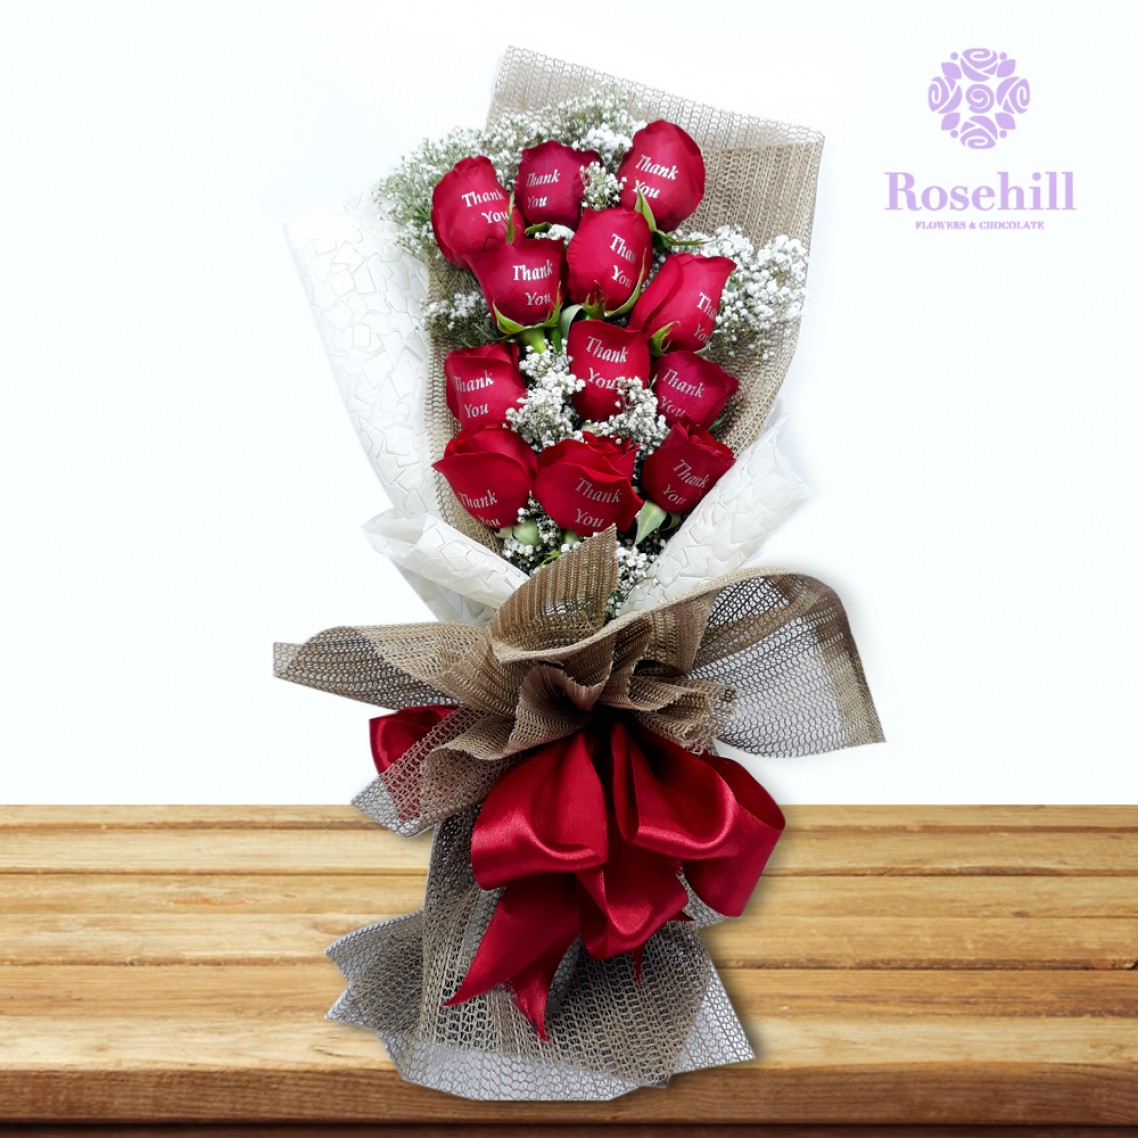 1524664767-h-250-_Rosehill's Thank You Bouquet with Baby's Breath- Red.jpg